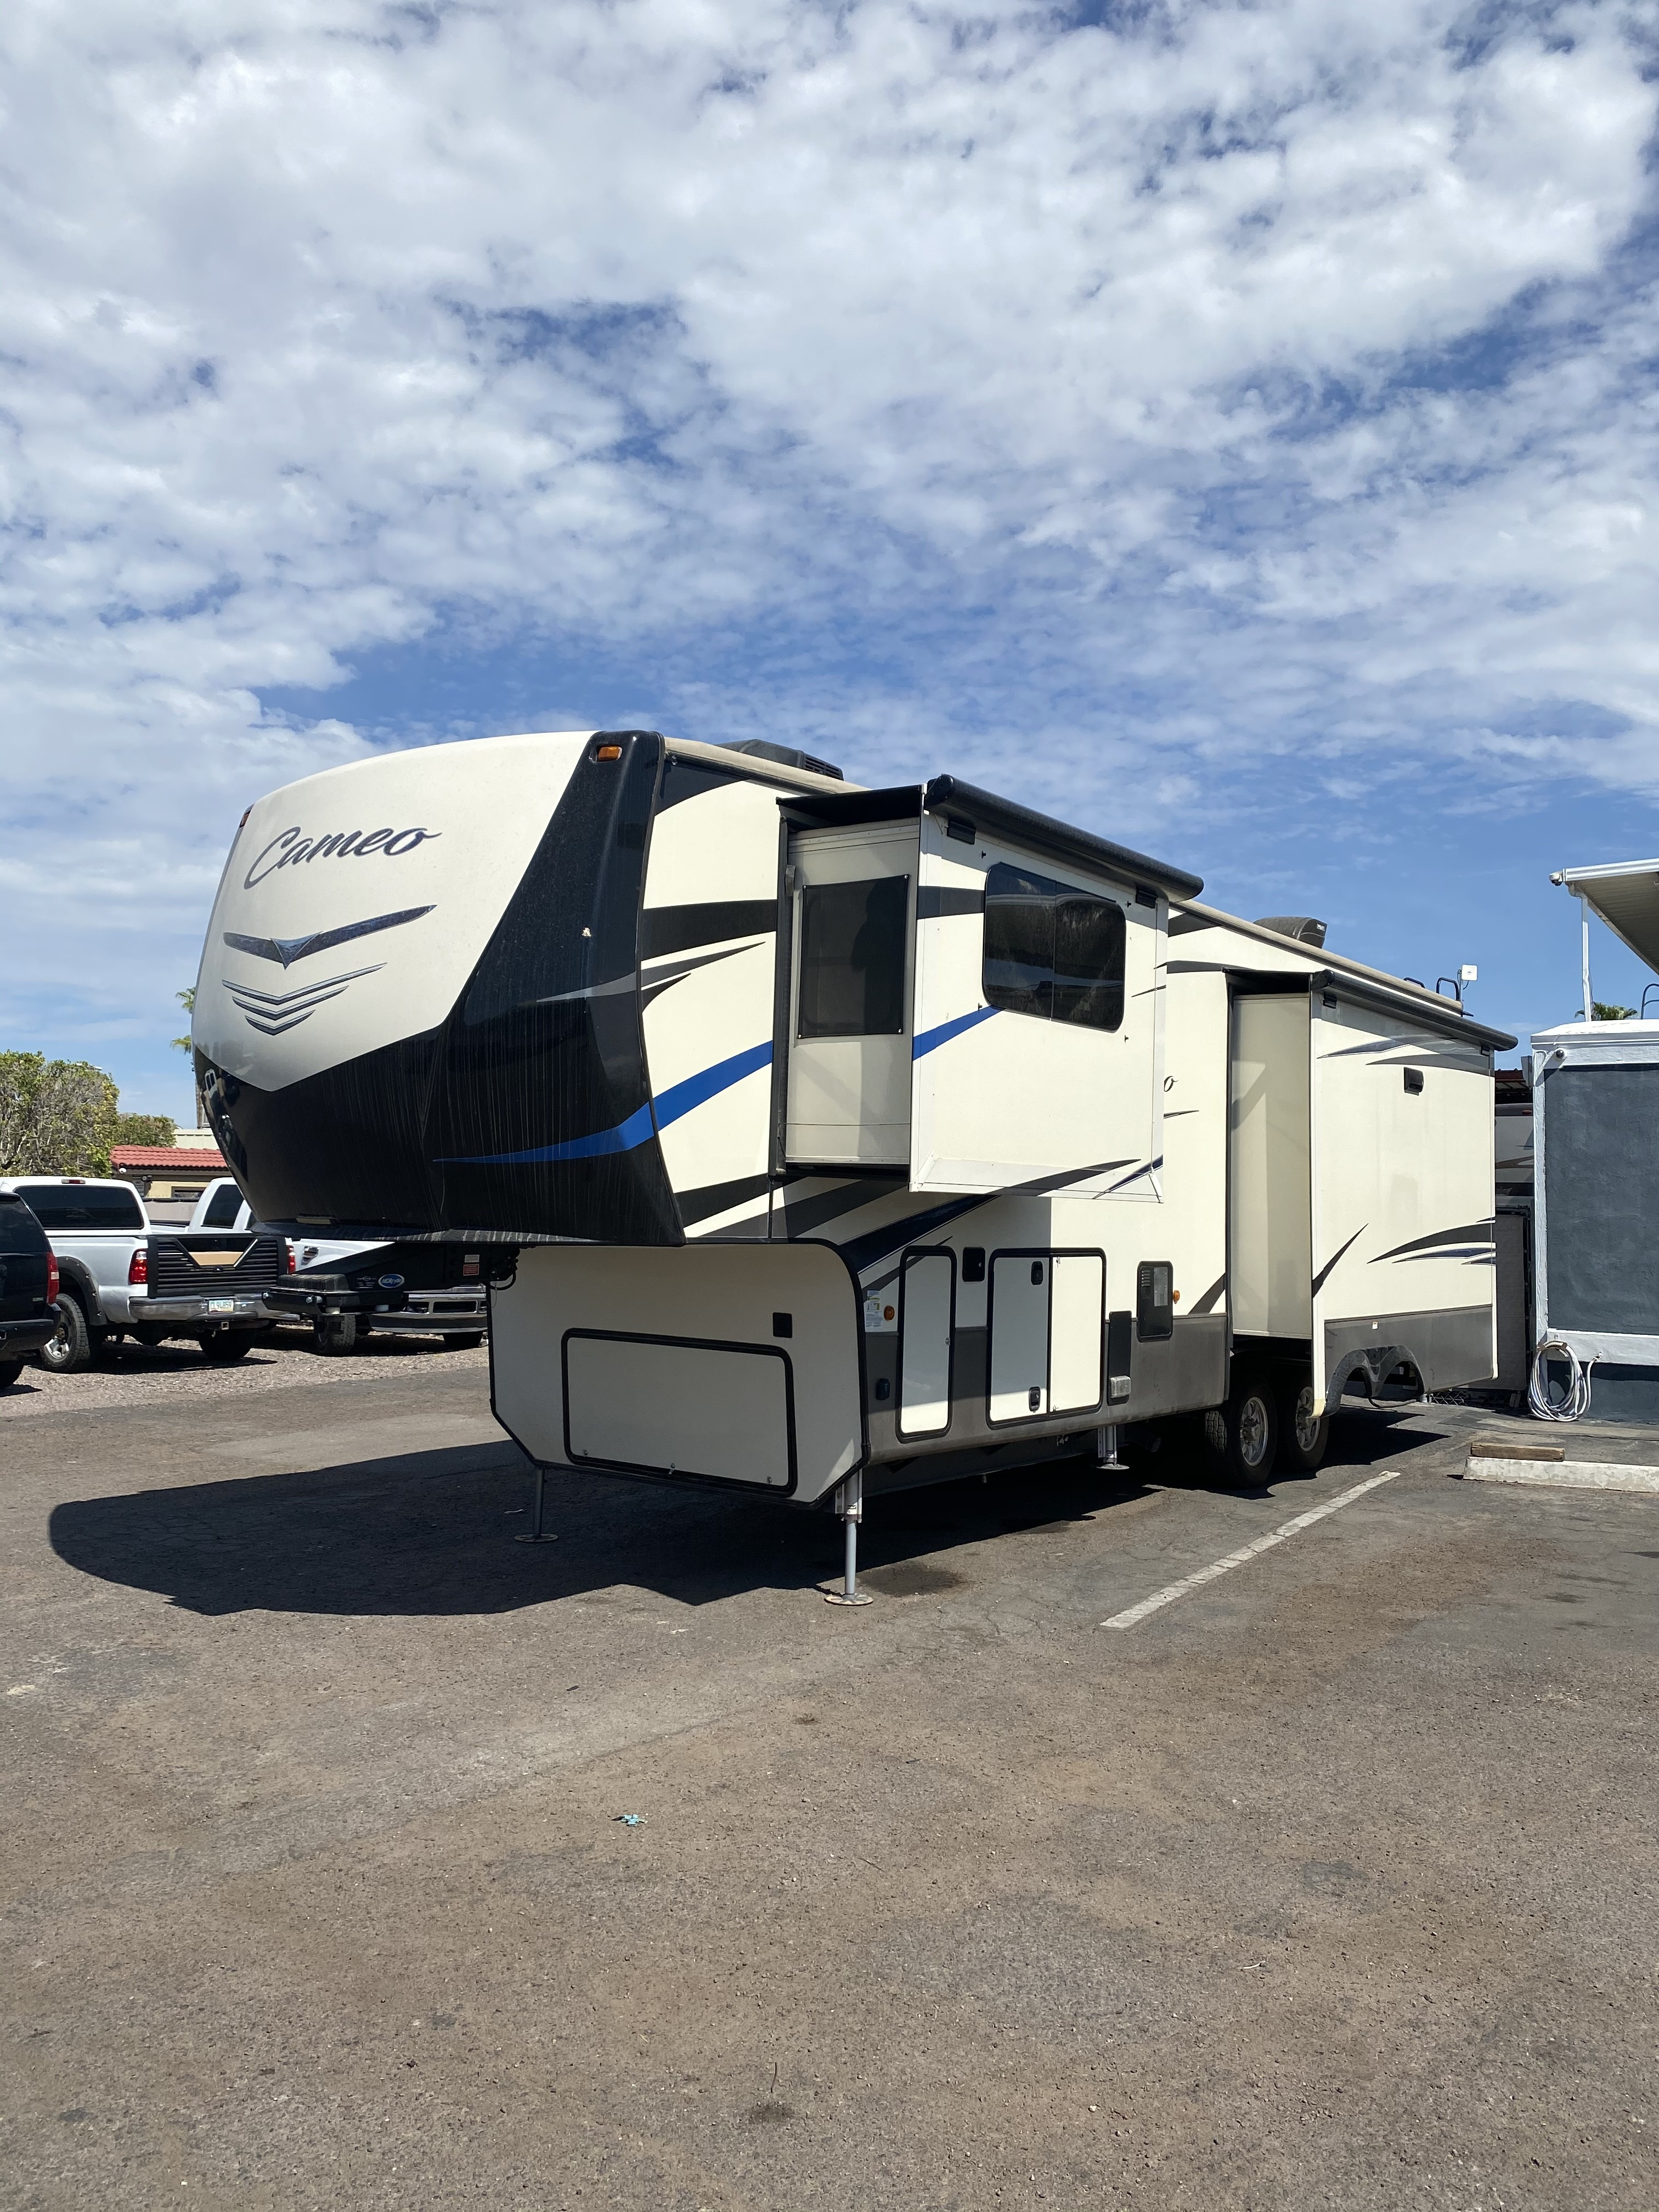 Used, 2018, CrossRoads, Cameo 3301RL, Fifth Wheels